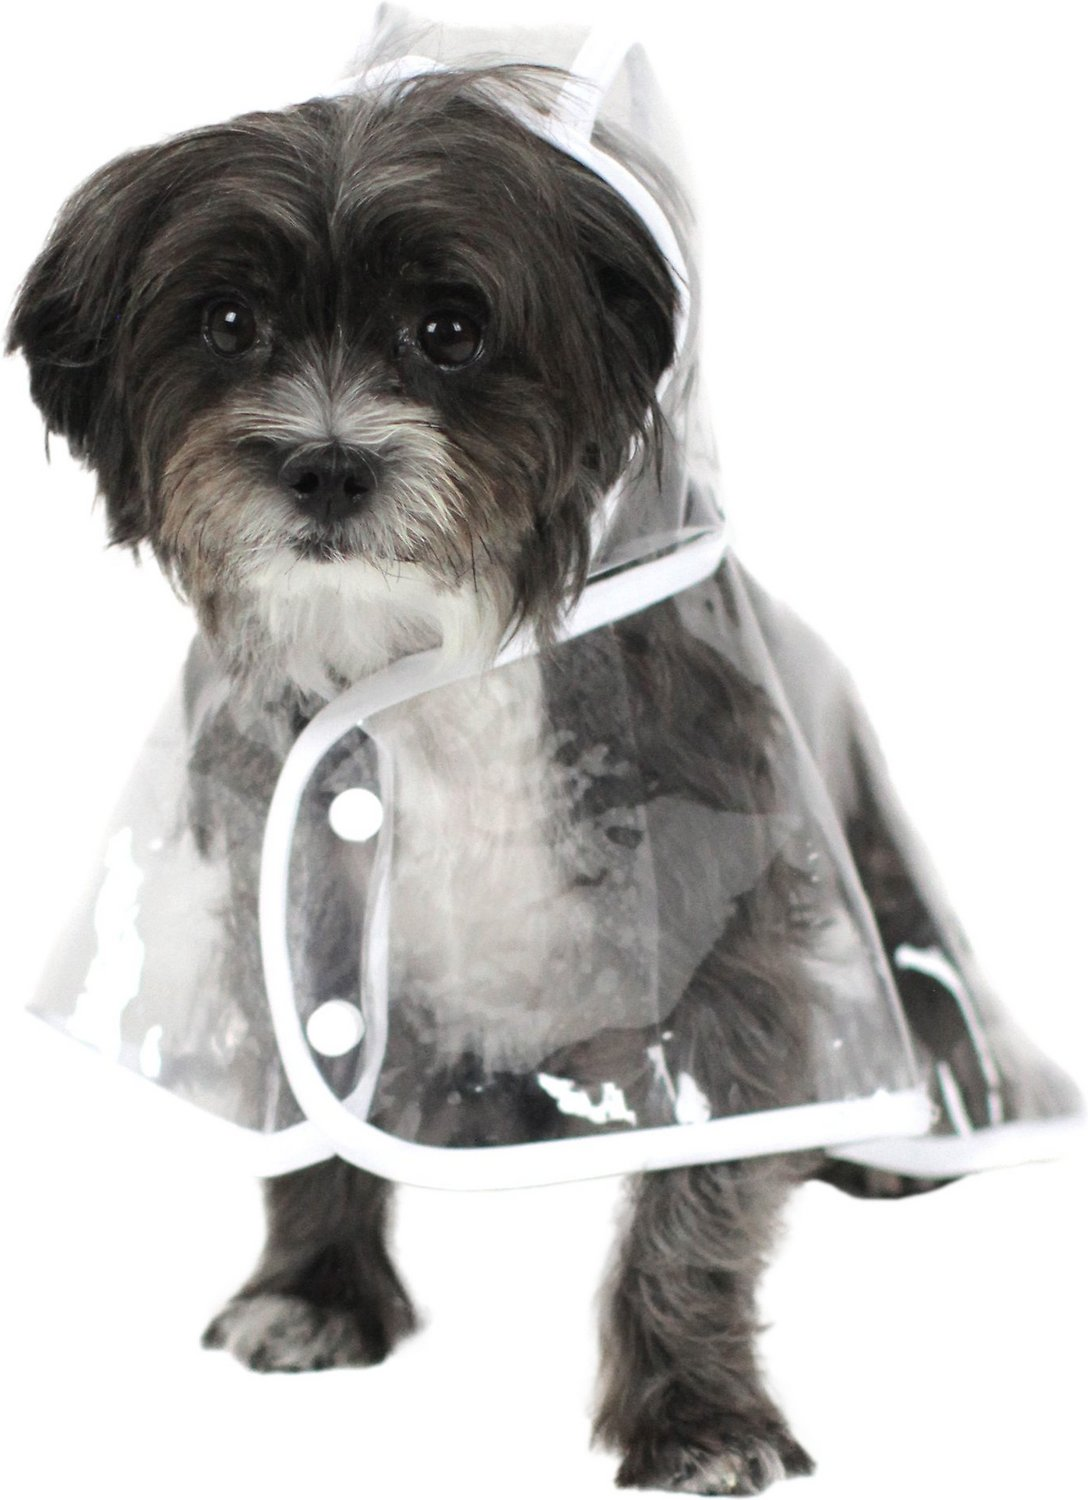 Safety Pet Dog Raincoat Waterproof Rain Coat Jackets Dog Puppy Reflective Raincoats Clothing